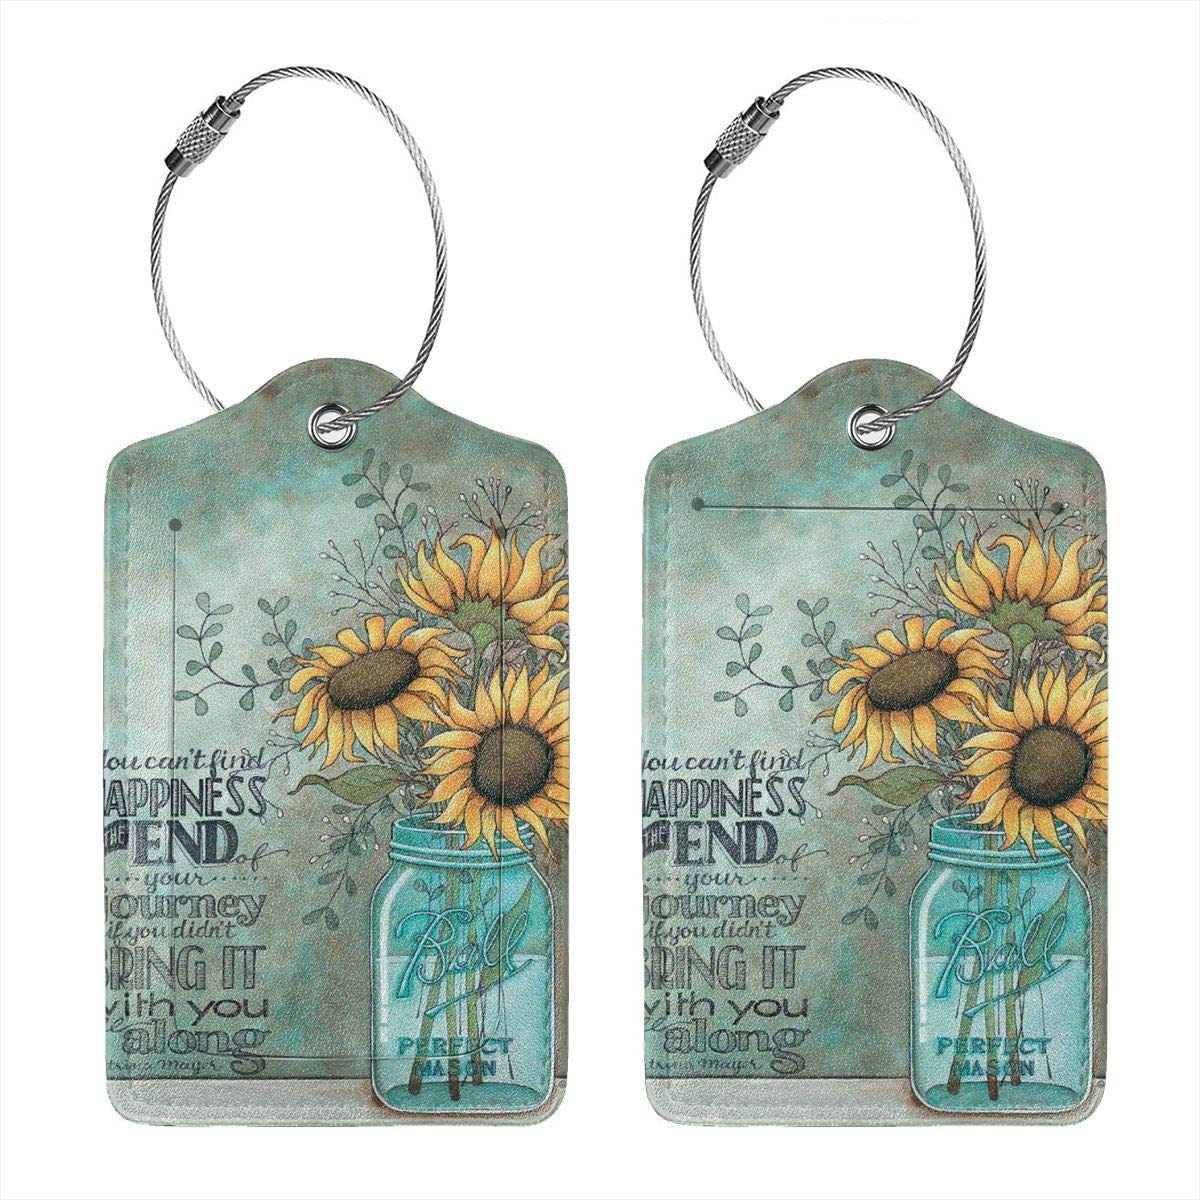 Sunflower In Bottle Luggage Tag Label Travel Bag Label With Privacy Cover Luggage Tag Leather Personalized Suitcase Tag Travel Accessories